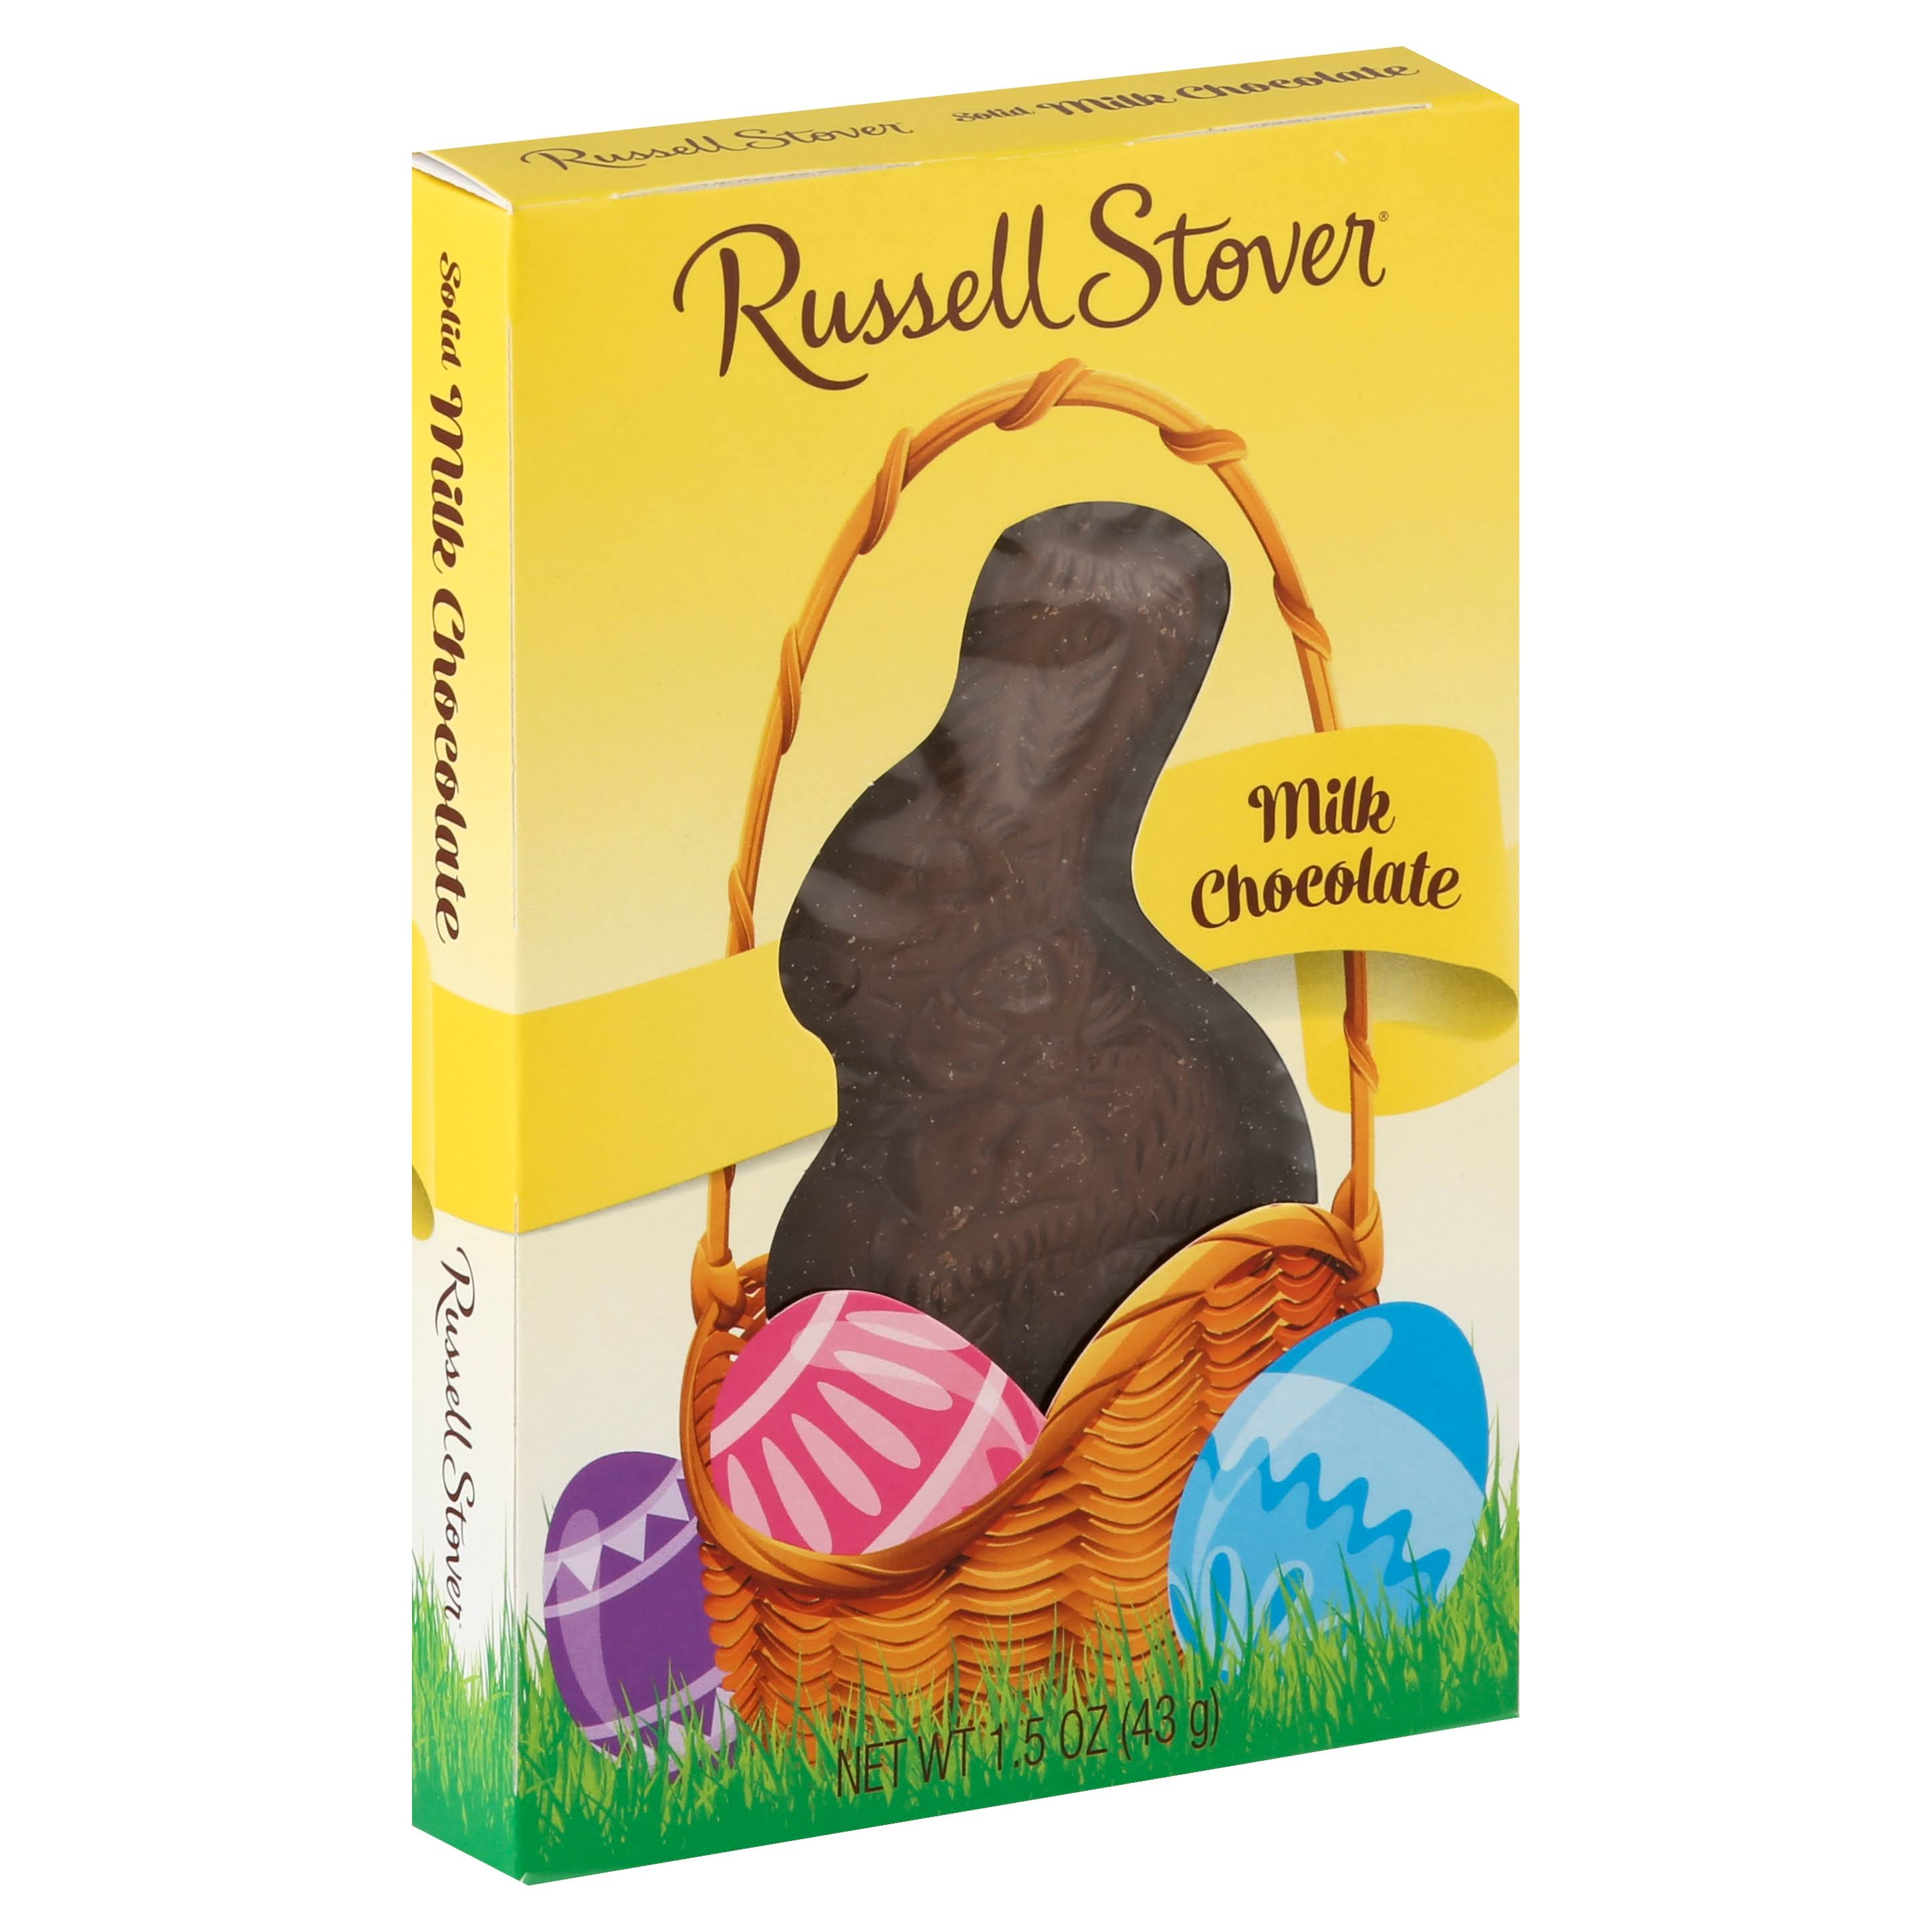 Russell Stover Solid Bunny Milk Chocolate - 1.5oz